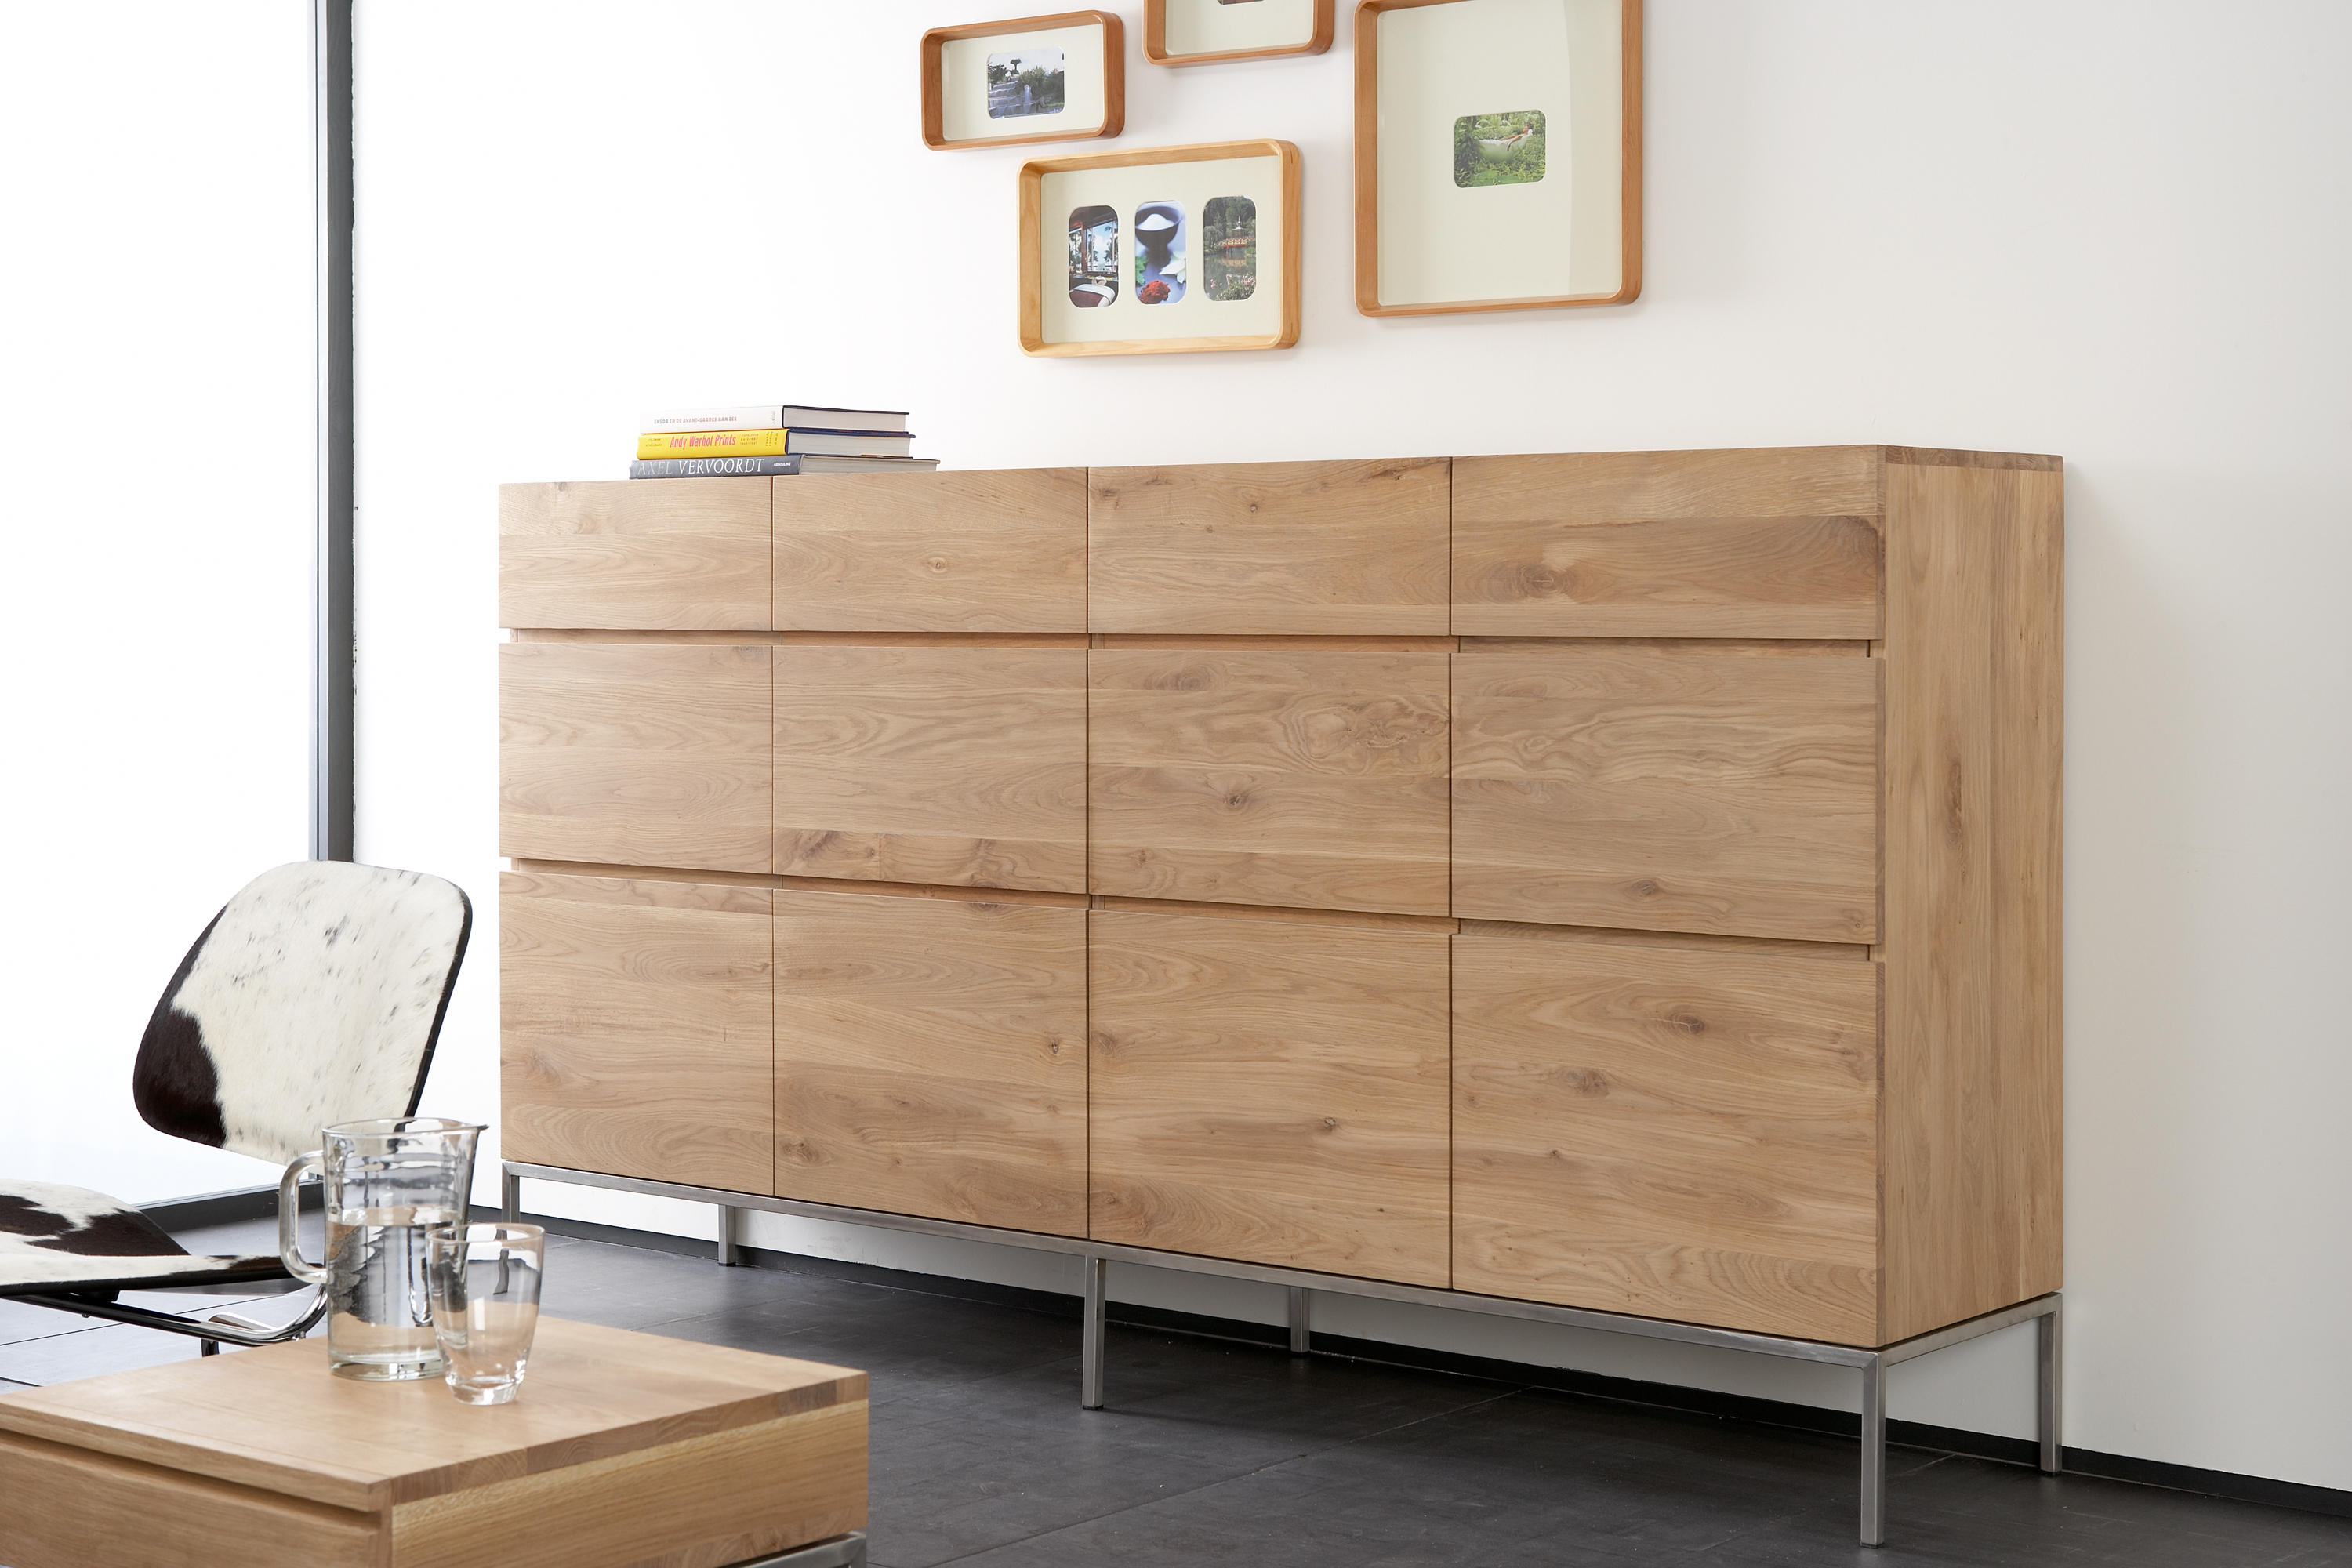 Moderne Sideboard oak ligna sideboard sideboards from ethnicraft architonic